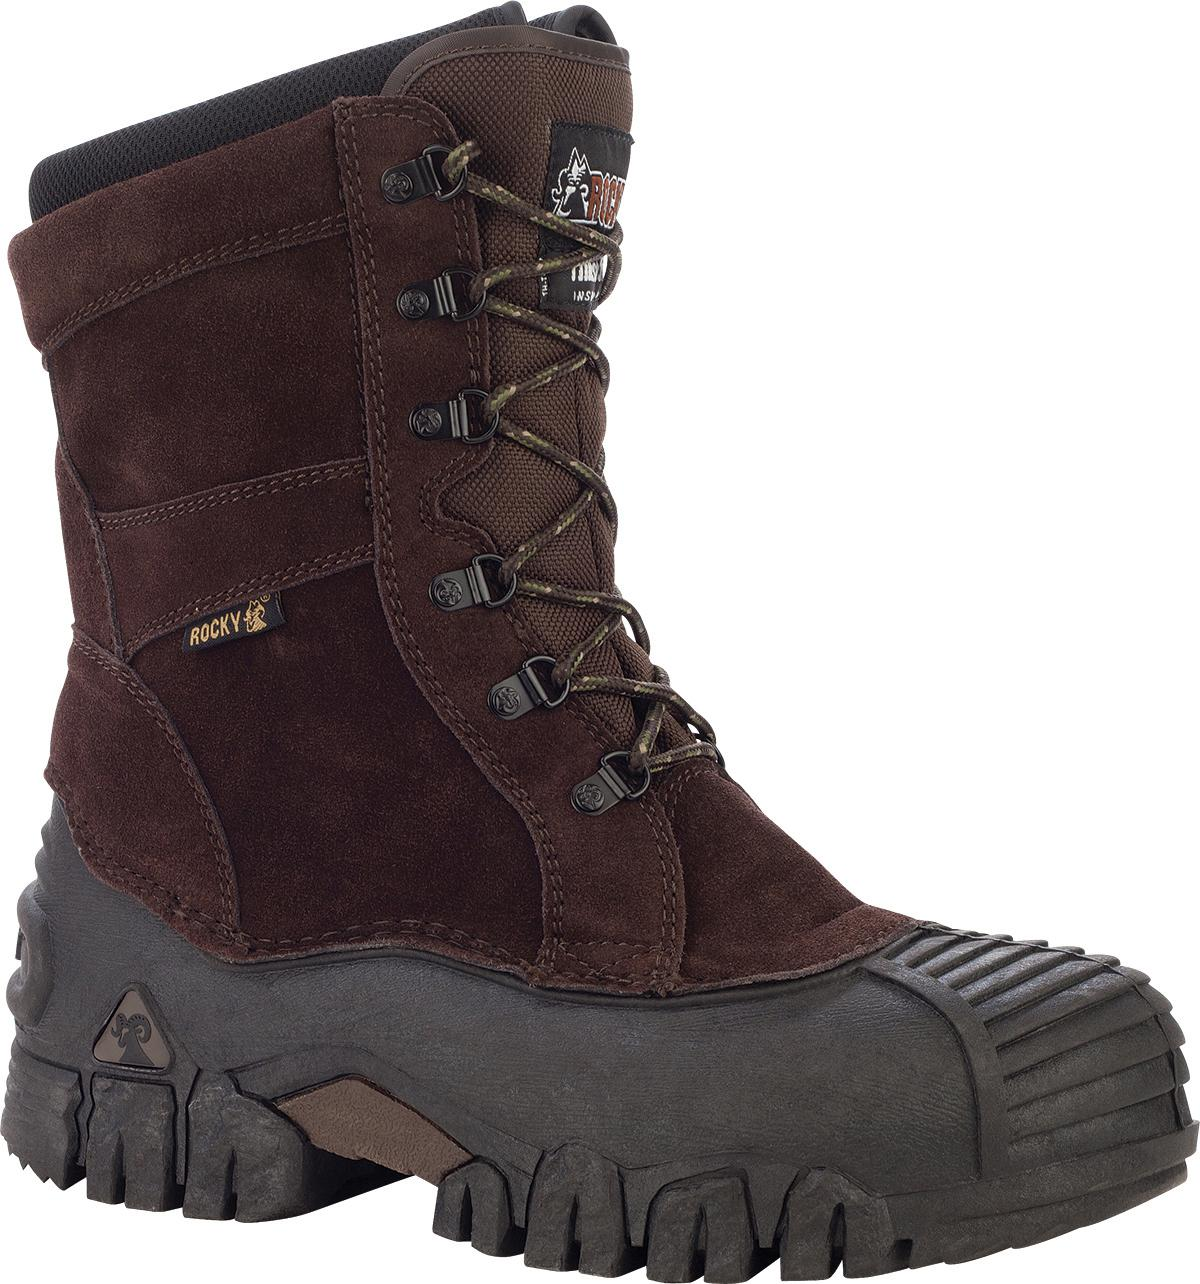 Rocky Jasper Trac Insulated Snow Boots  00004799